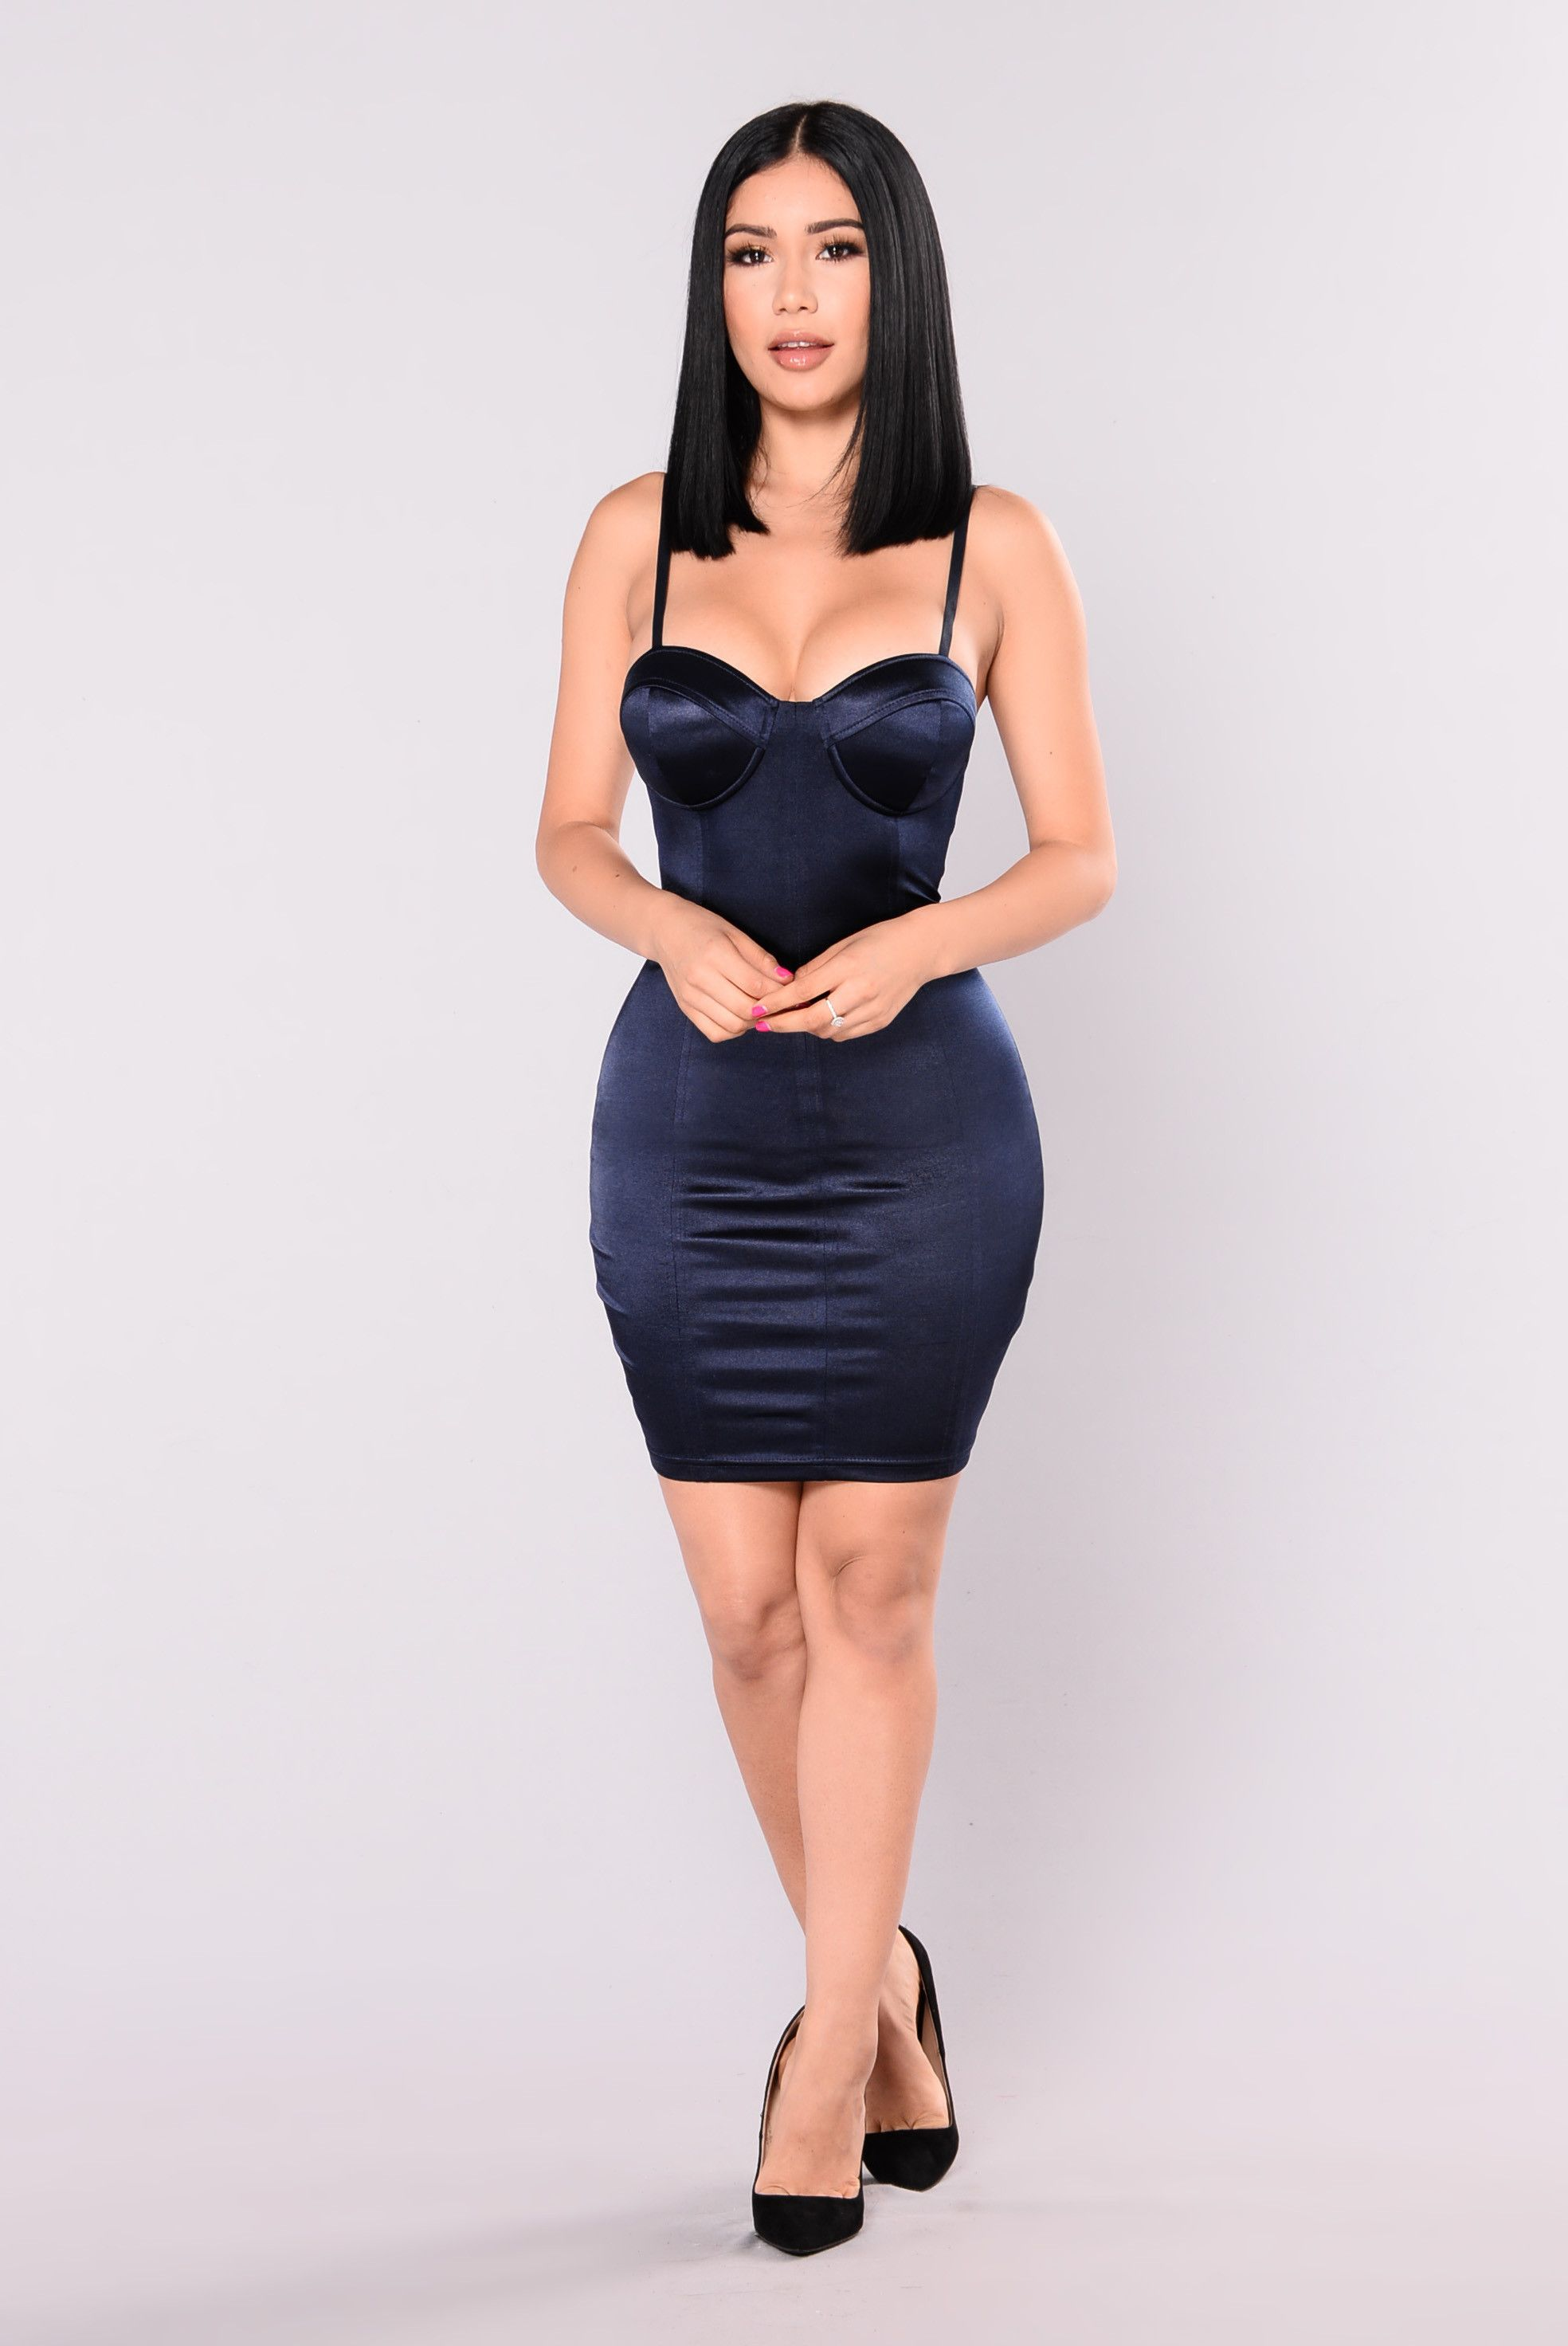 fcbf3429d67 Available In Magenta and Navy Stretch Satin Mini Dress Padded Cups  Adjustable Straps Zipper Back 94% Polyester 6% Spandex